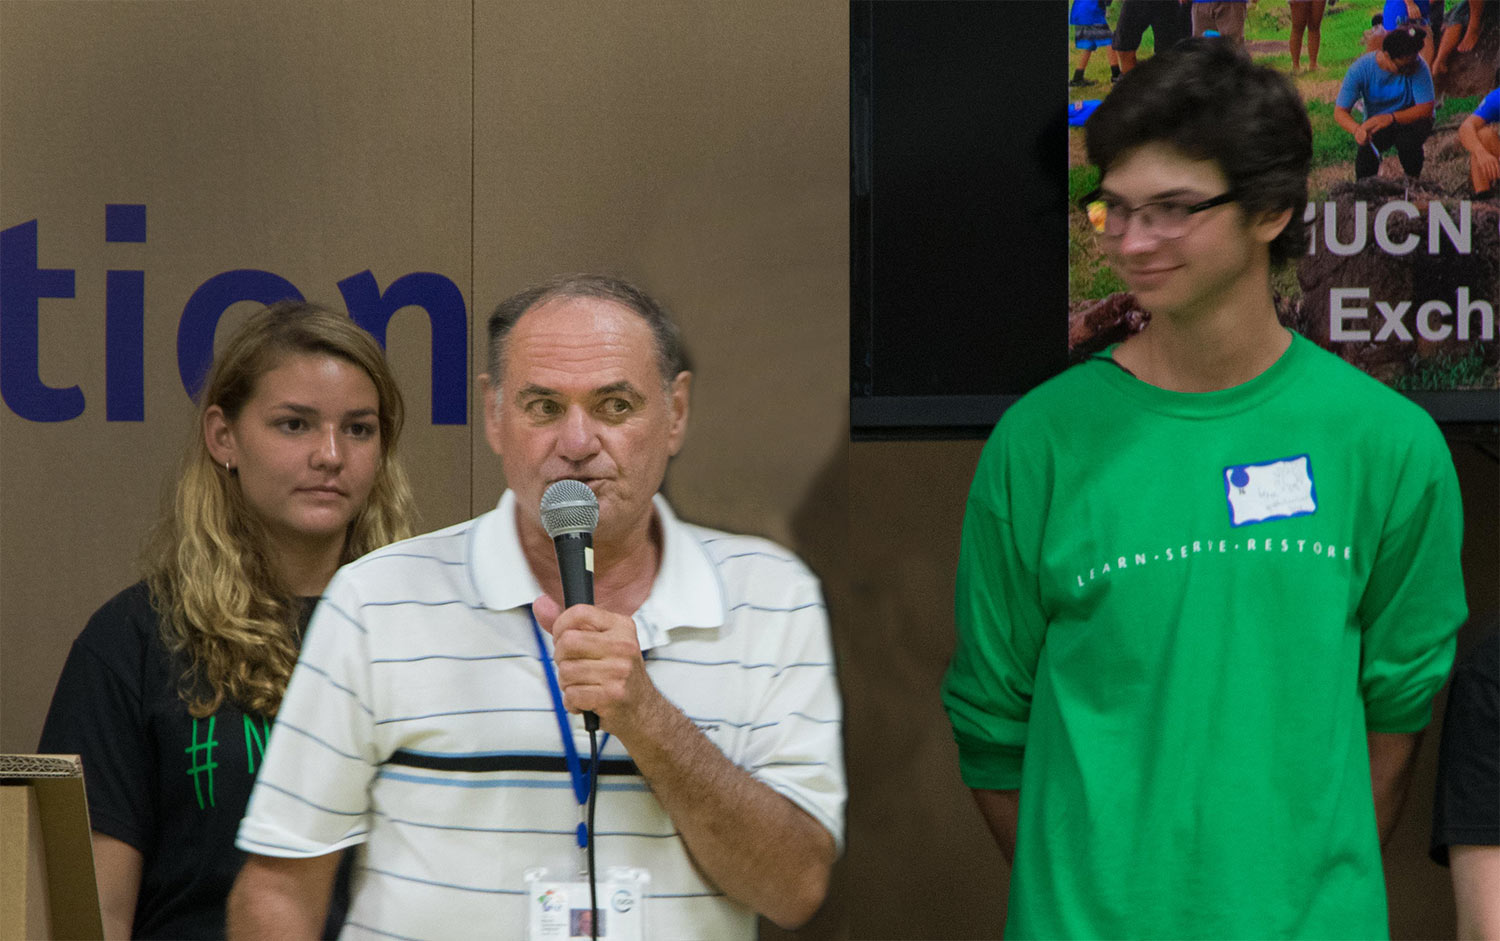 Bob speaking to students